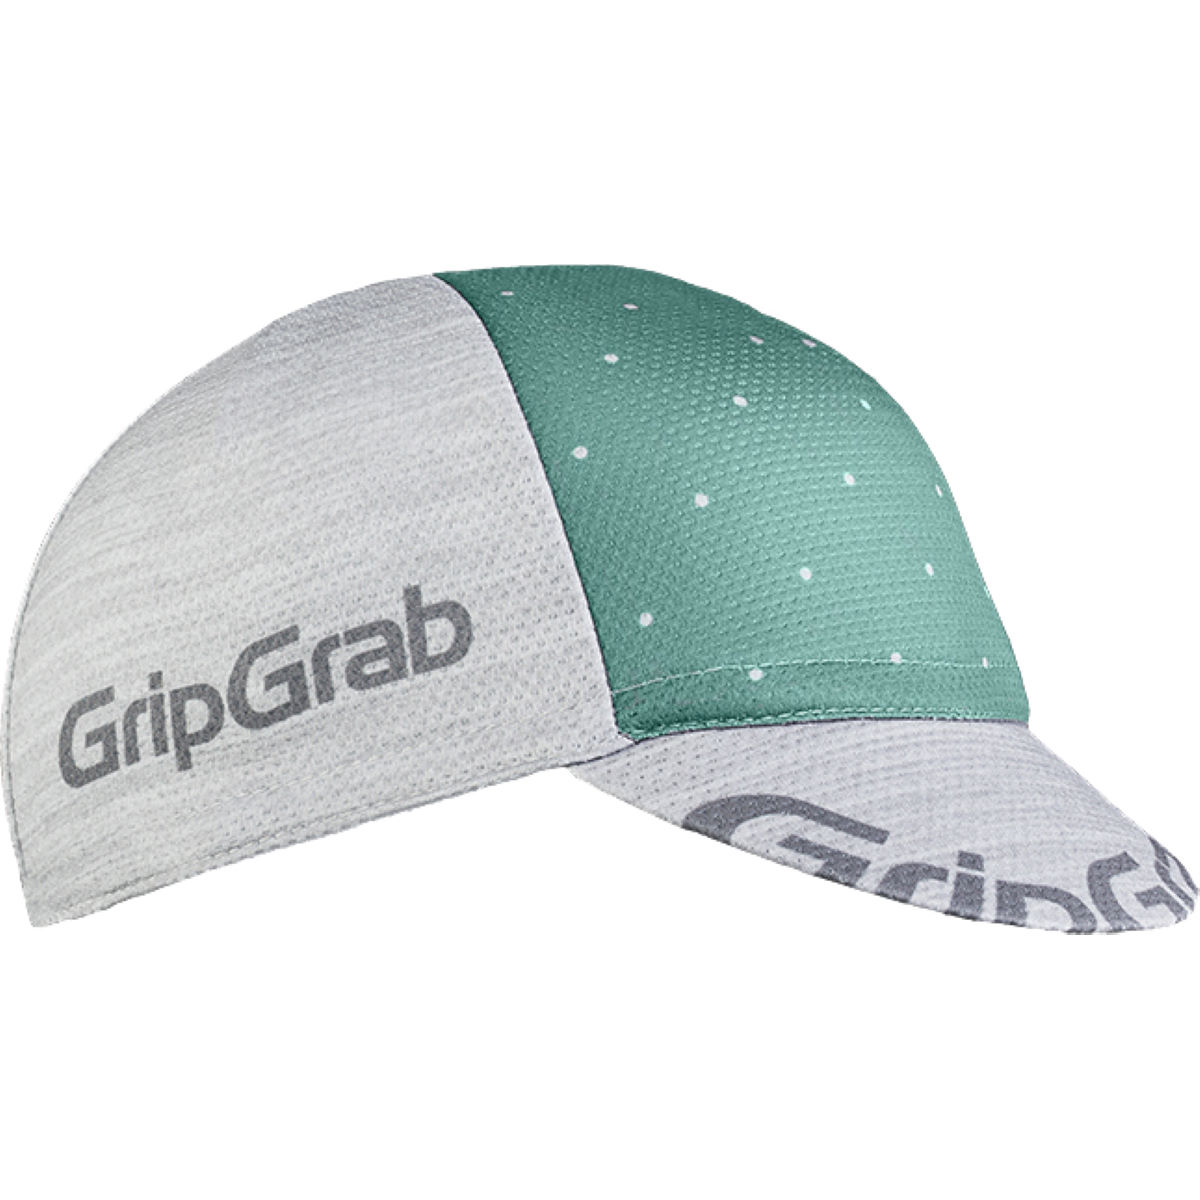 GripGrab Women's Summer Cycling Cap - Gorras